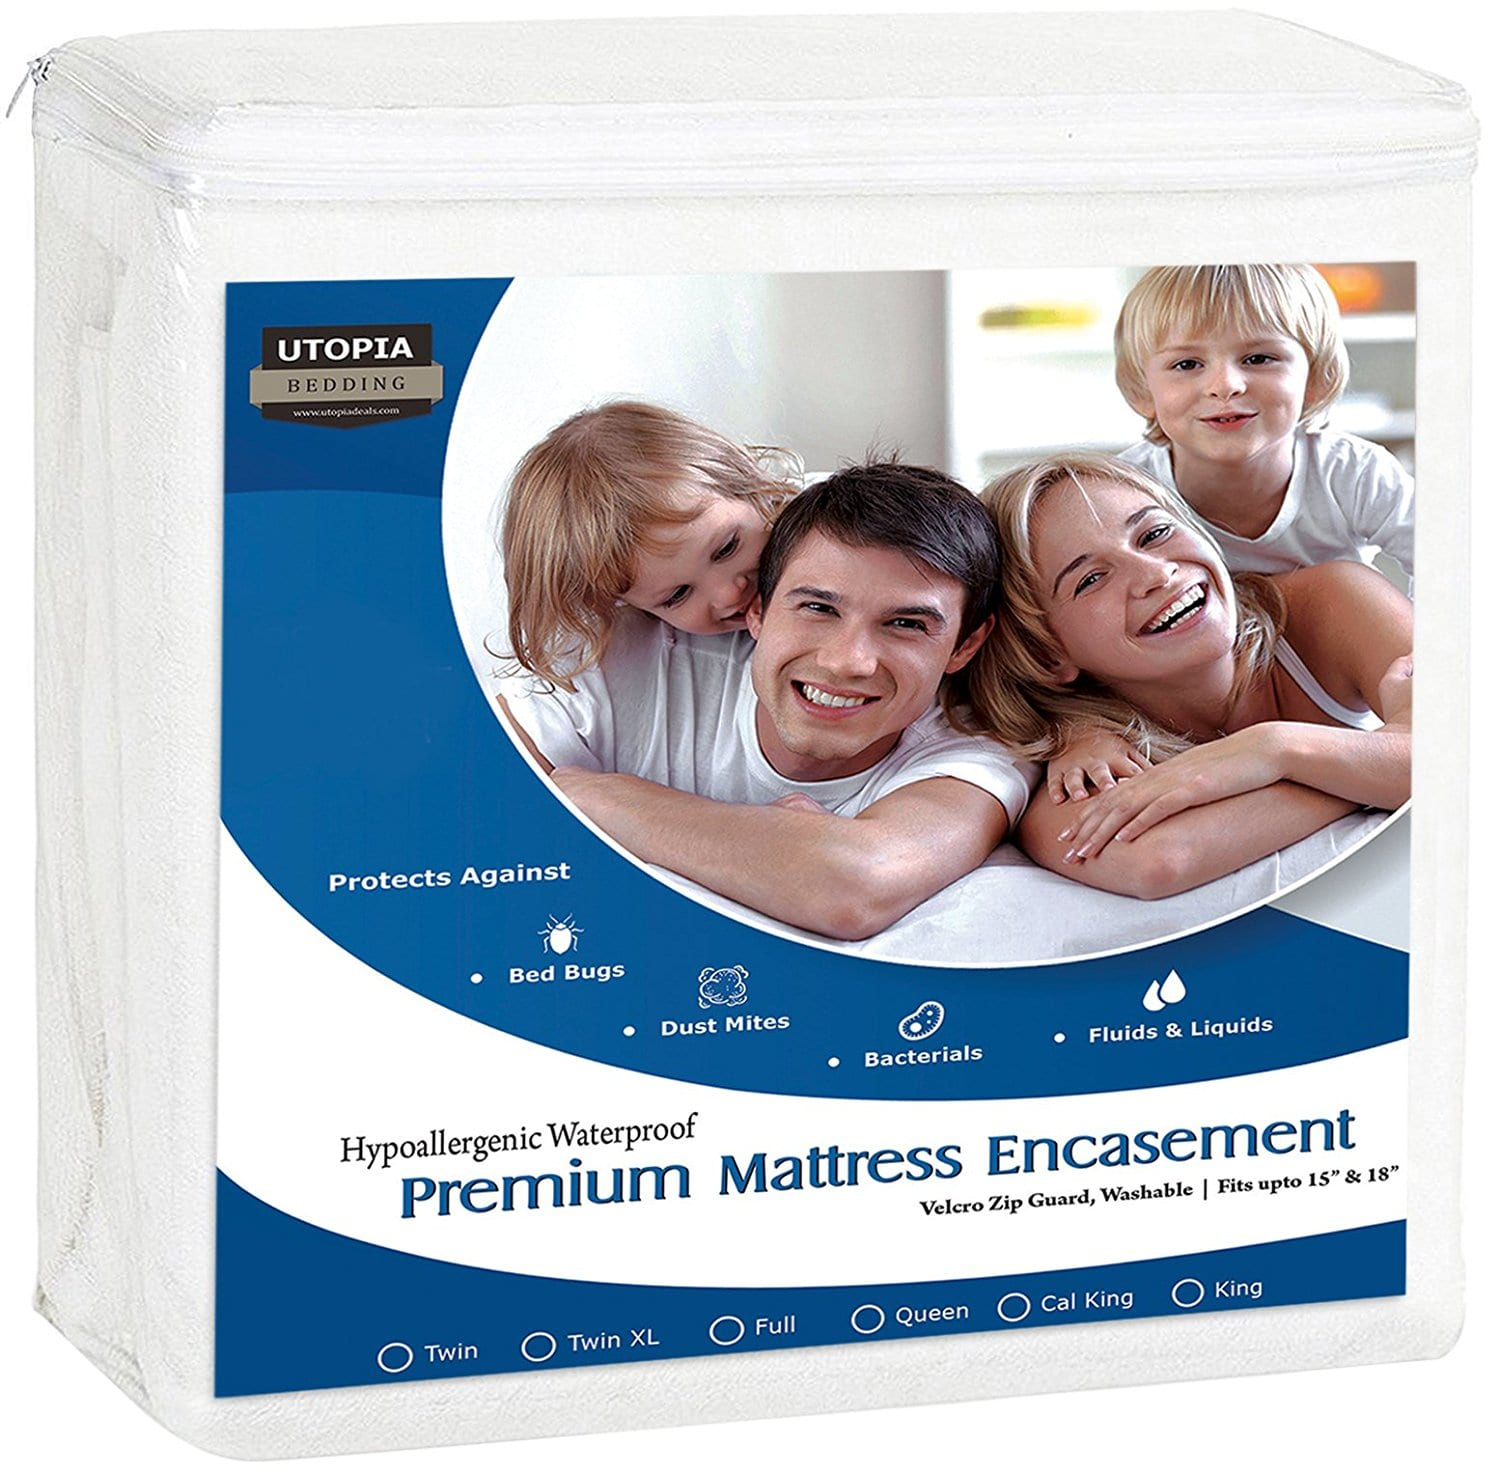 Utopia Bedding Best Mattress Protectors Review by www.snoremagazine.com